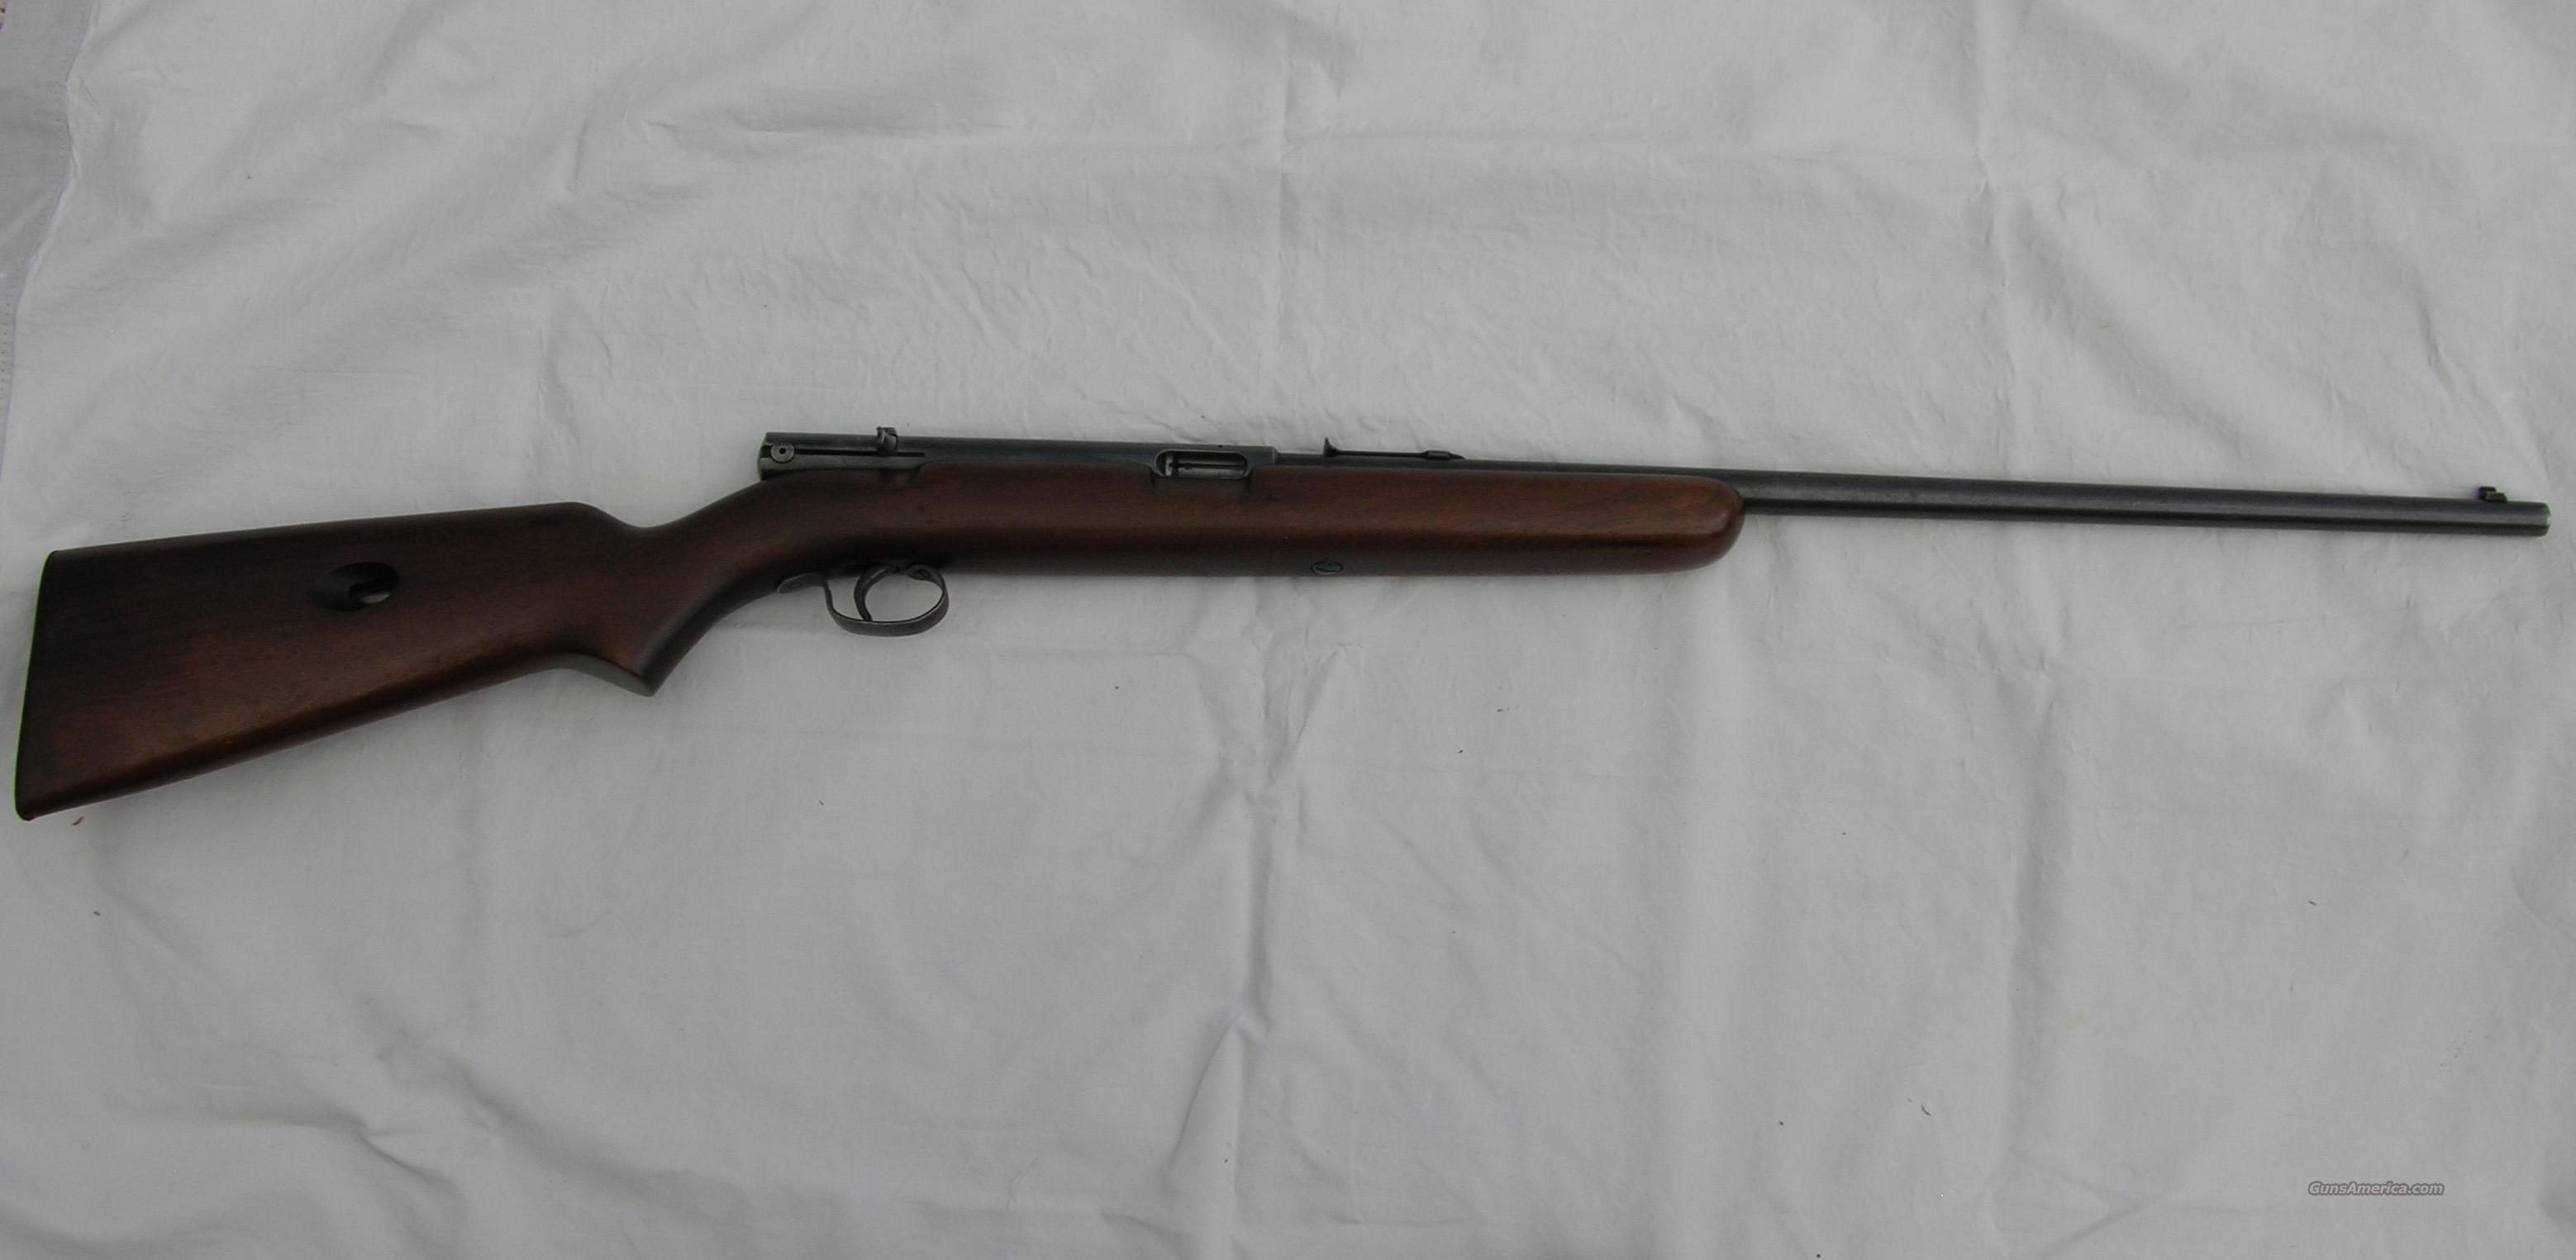 WINCHESTER M74 22LR  Guns > Rifles > Winchester Rifles - Modern Bolt/Auto/Single > Autoloaders